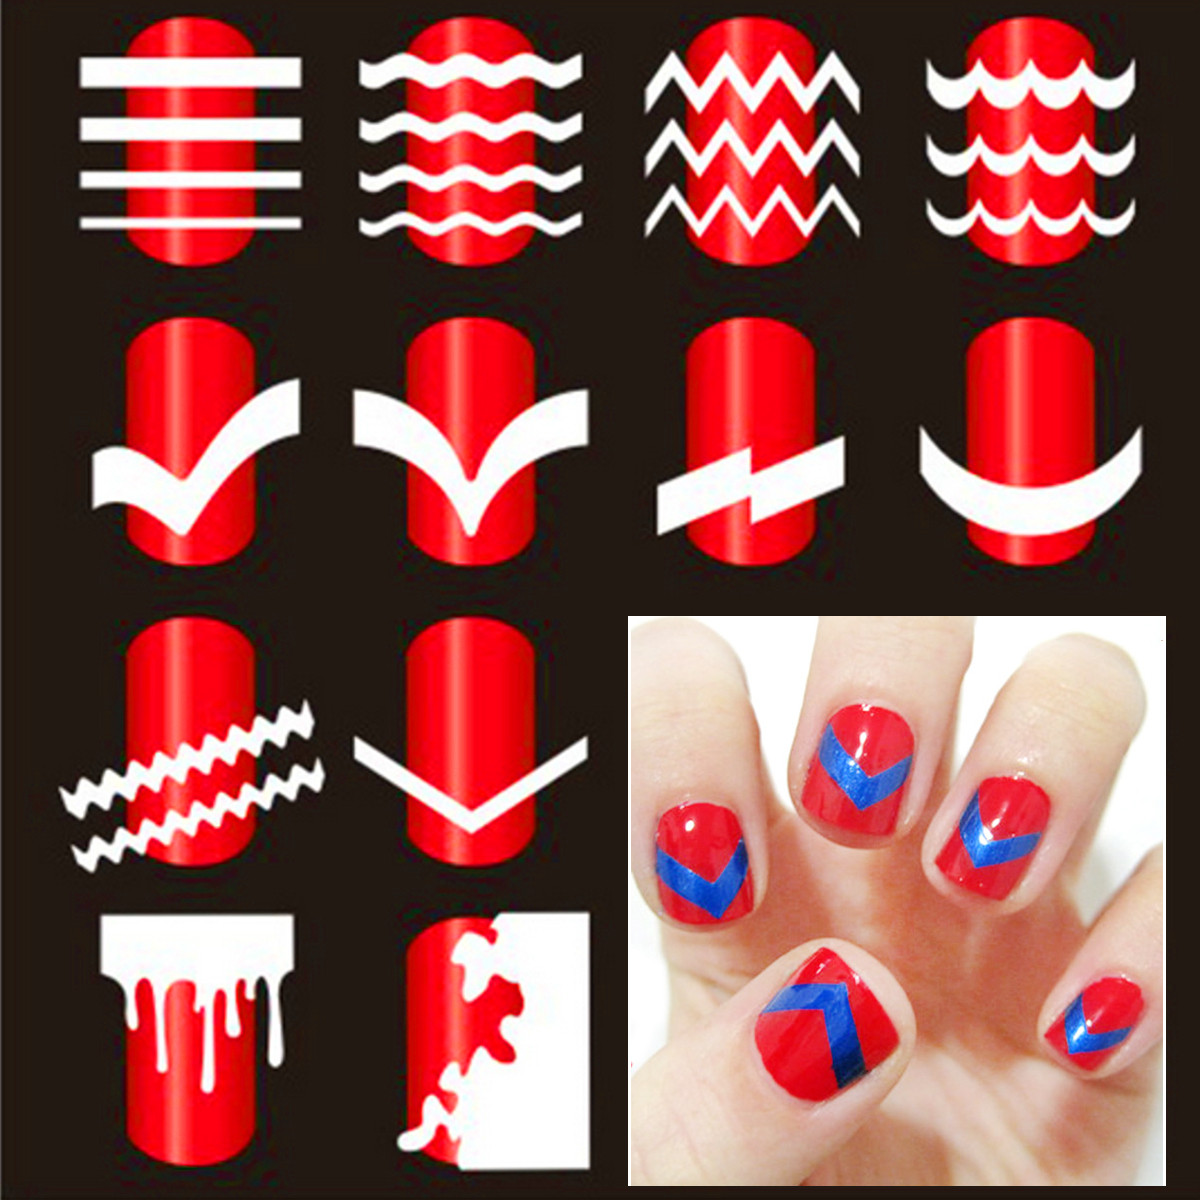 French Nail Art Tip Tape Guide Stencil Manicure Tool For Sticker Decal Decoration DIY